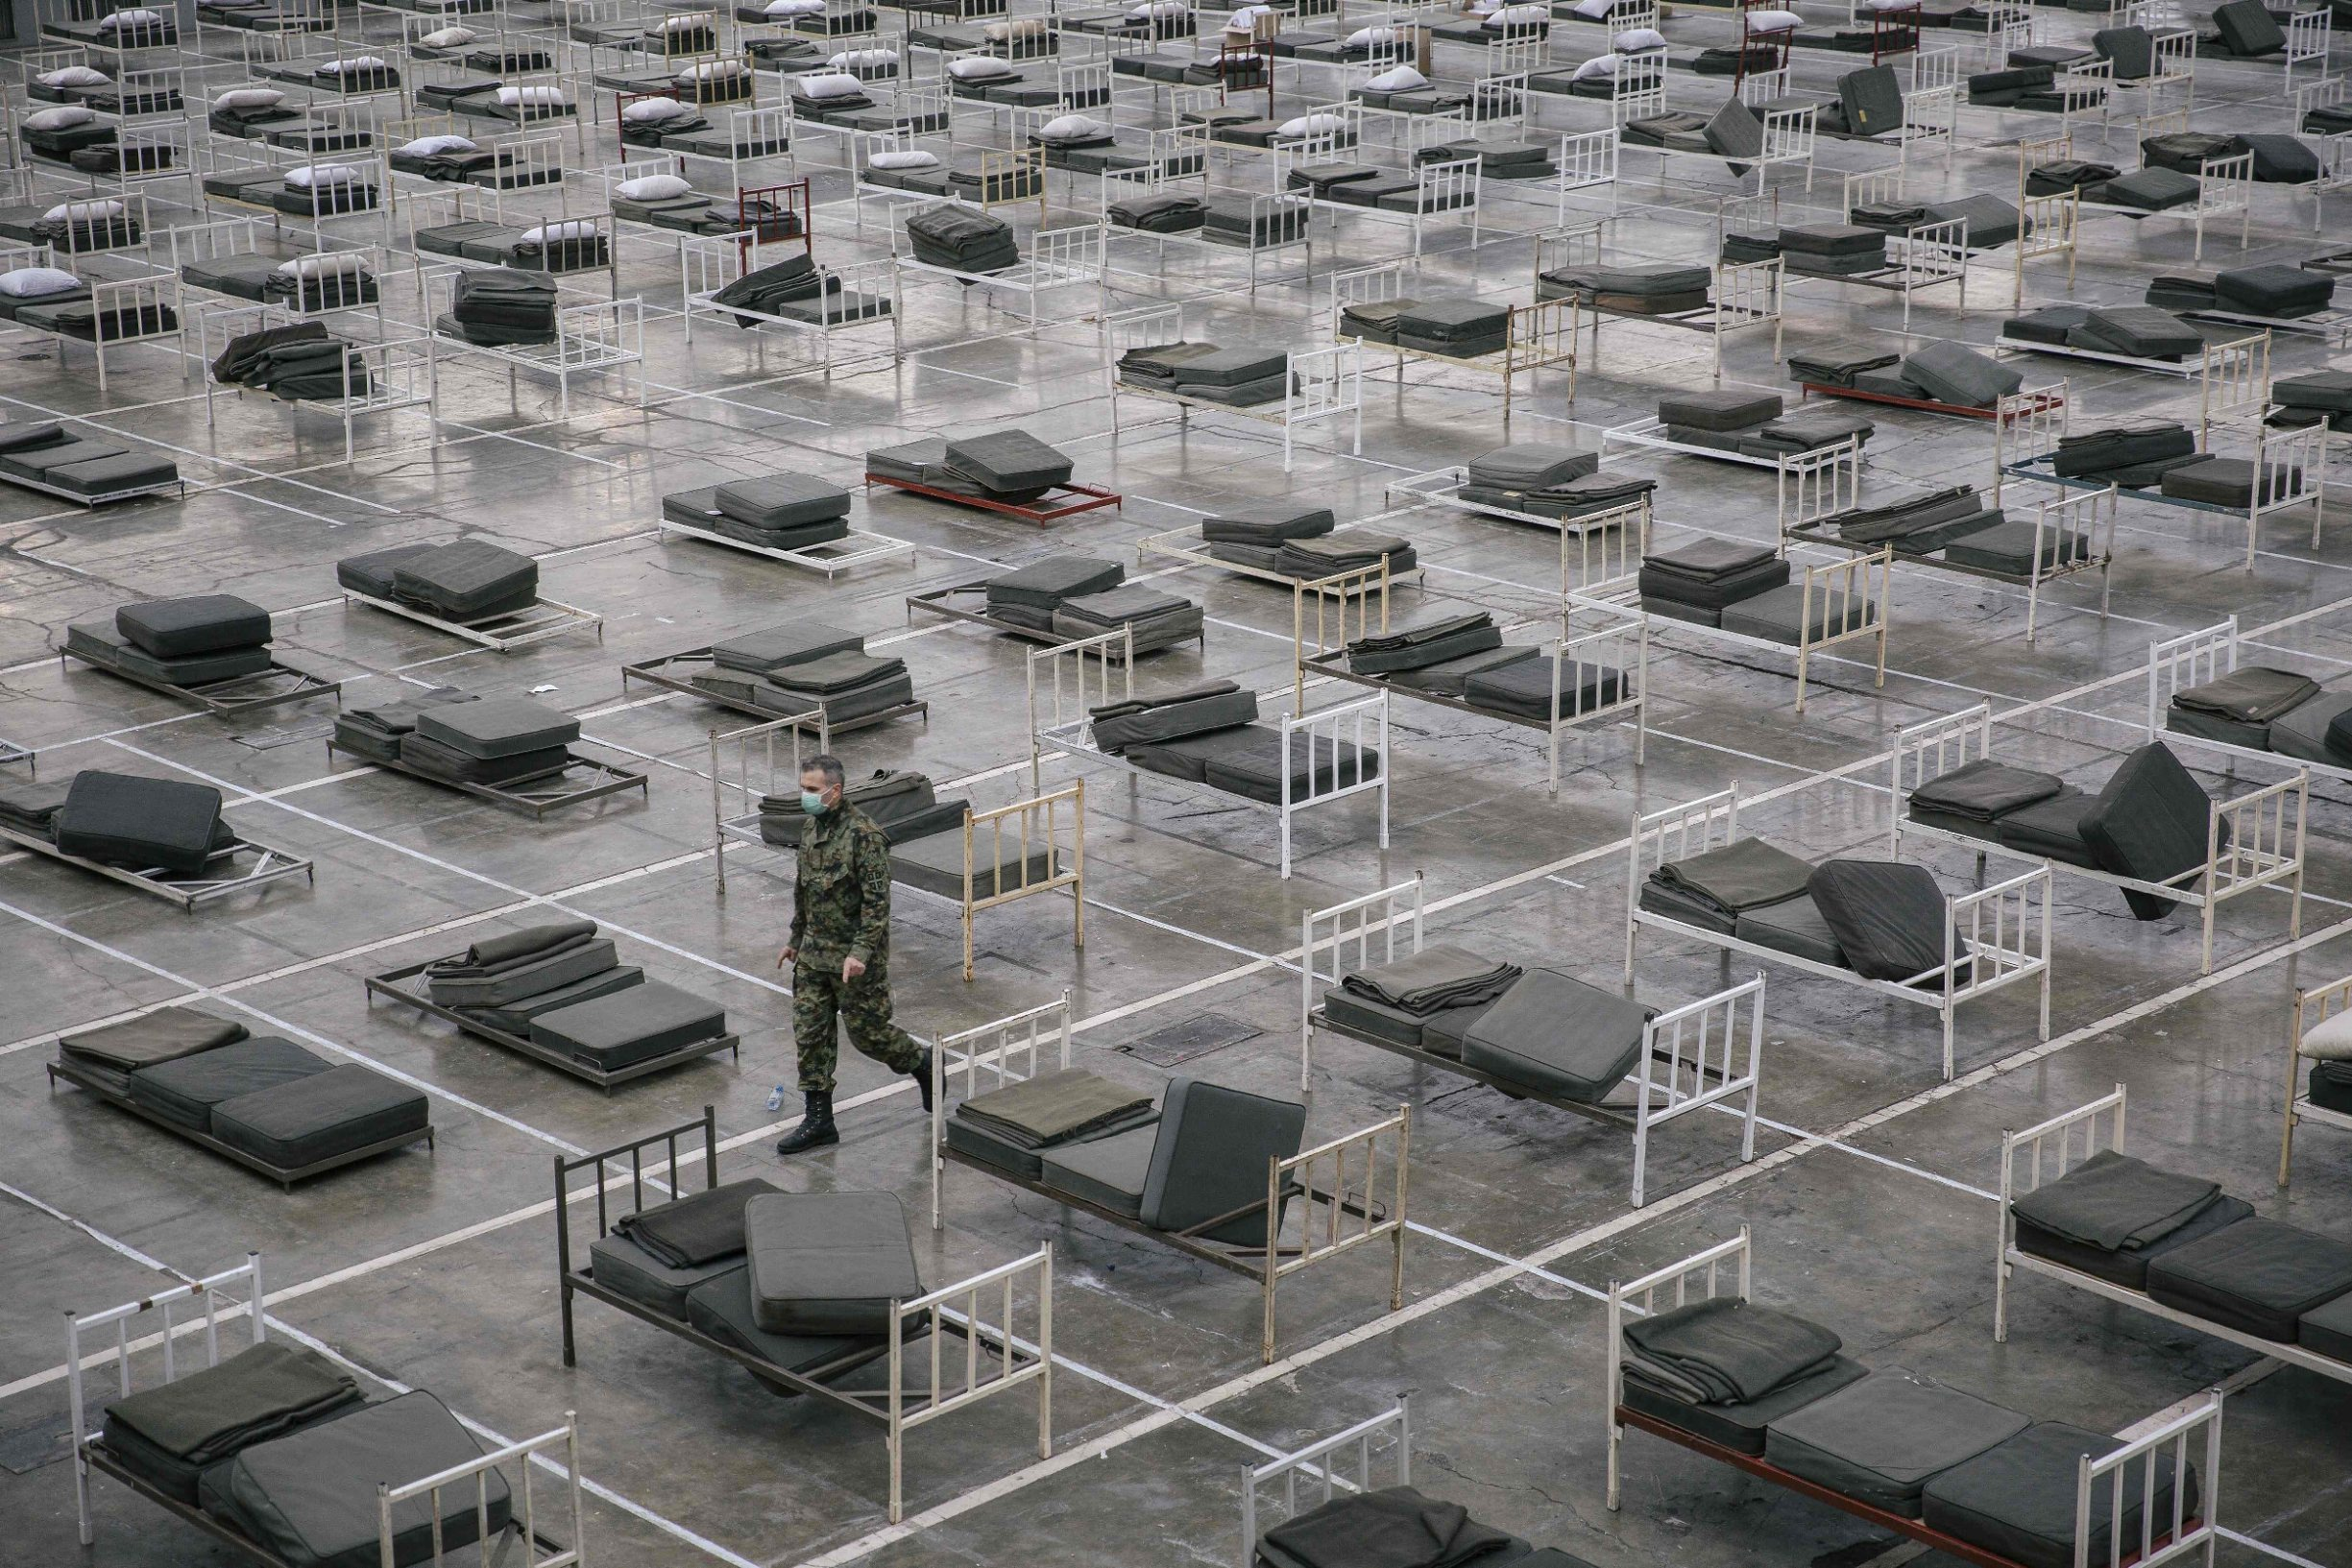 TOPSHOT - A Serbian military personal wearing a protective mask walks amongst beds set up inside a hall at the Belgrade Fair to accommodate people suffering from mild symptoms of the coronavirus disease (COVID-19) on March 24, 2020. - More than 200,000 coronavirus cases have been declared in Europe, according to an AFP tally on March 24, 2020. (Photo by Vladimir Zivojinovic / AFP)